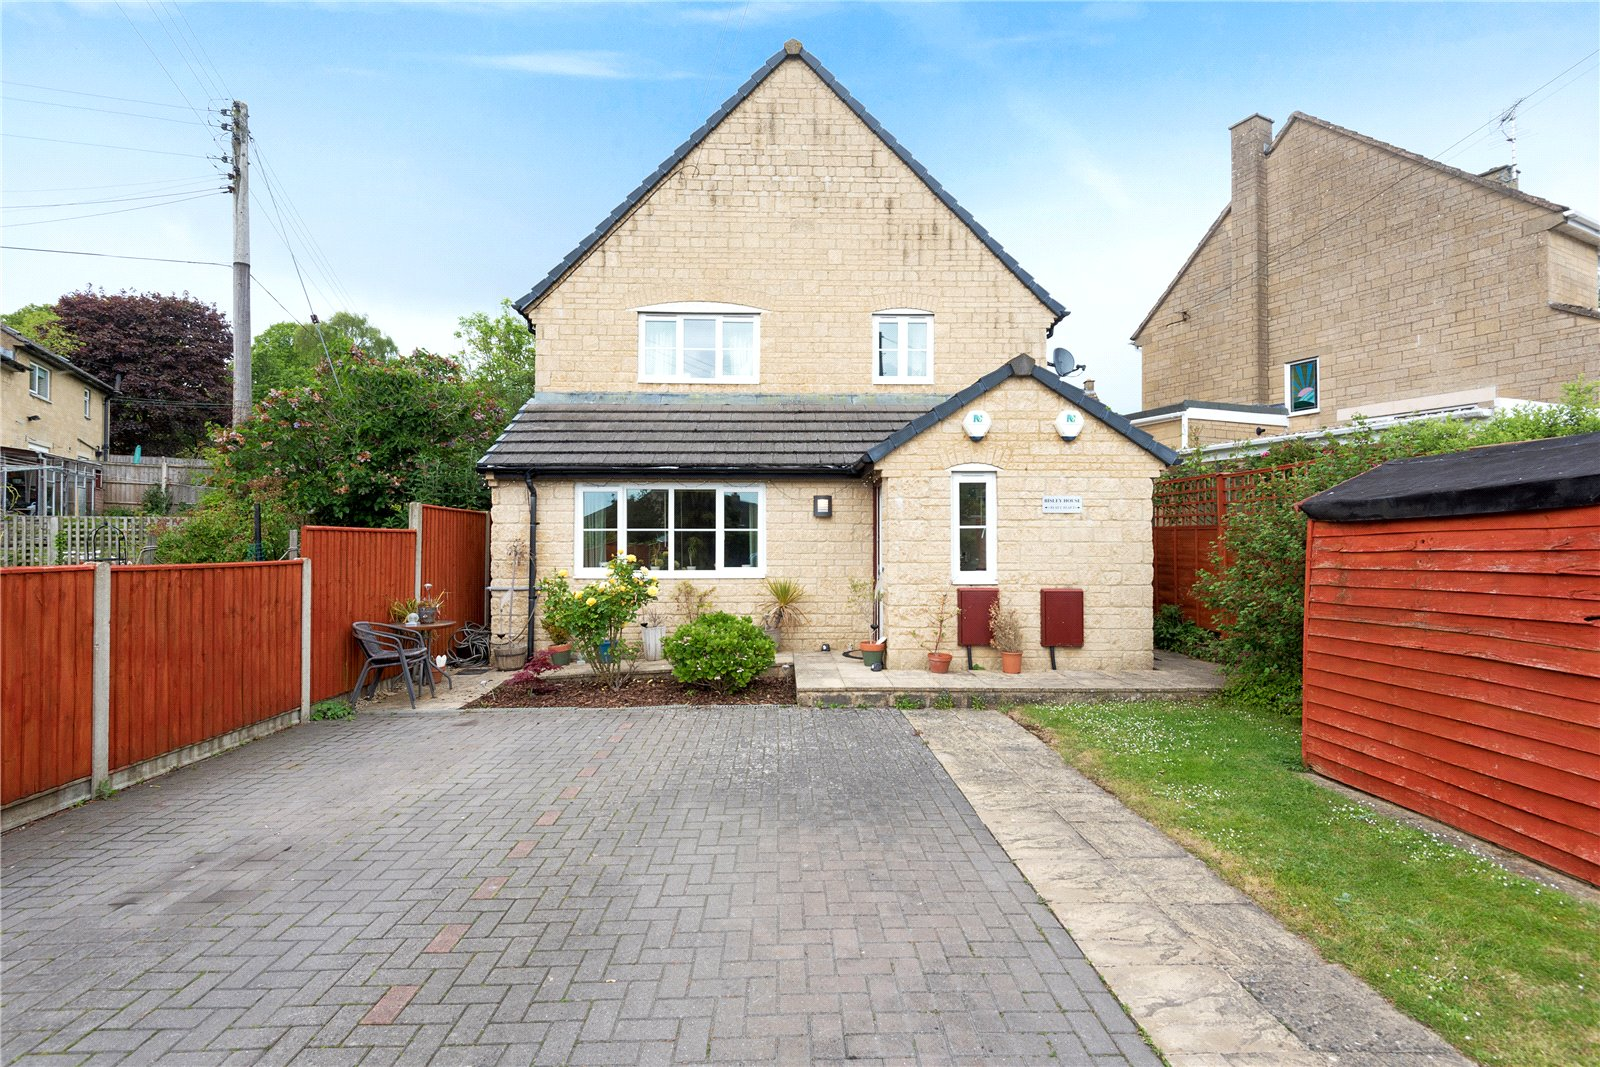 Dr Middletons Road, Chalford Hill, Stroud, GL6